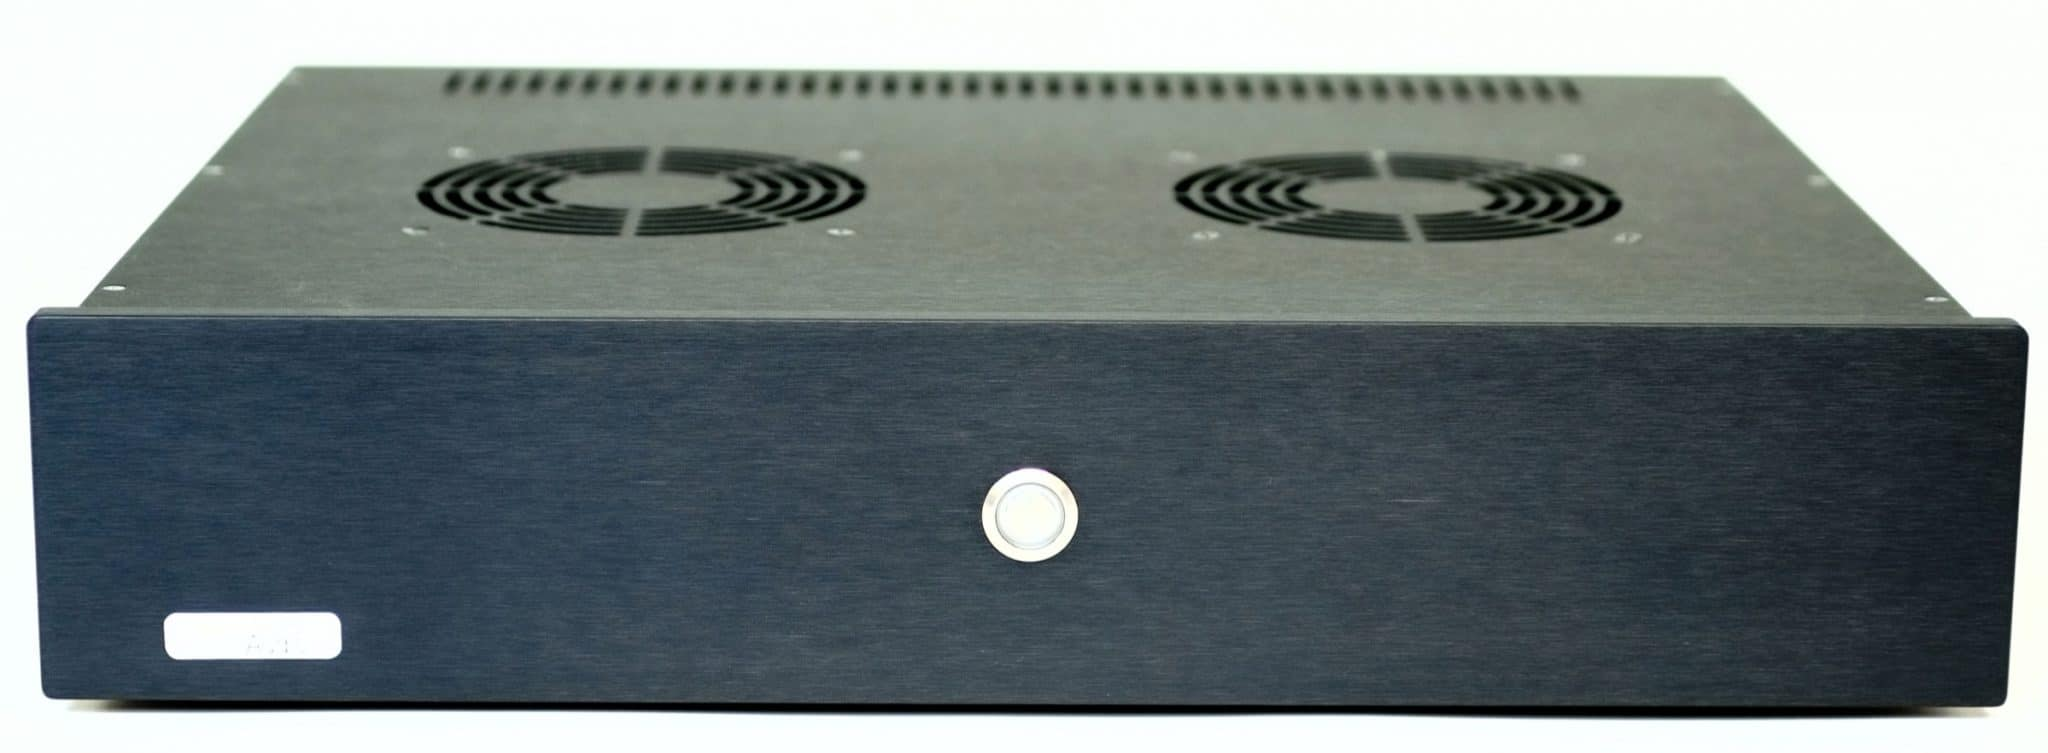 MA-01 flexible amplifier From KJF Audio